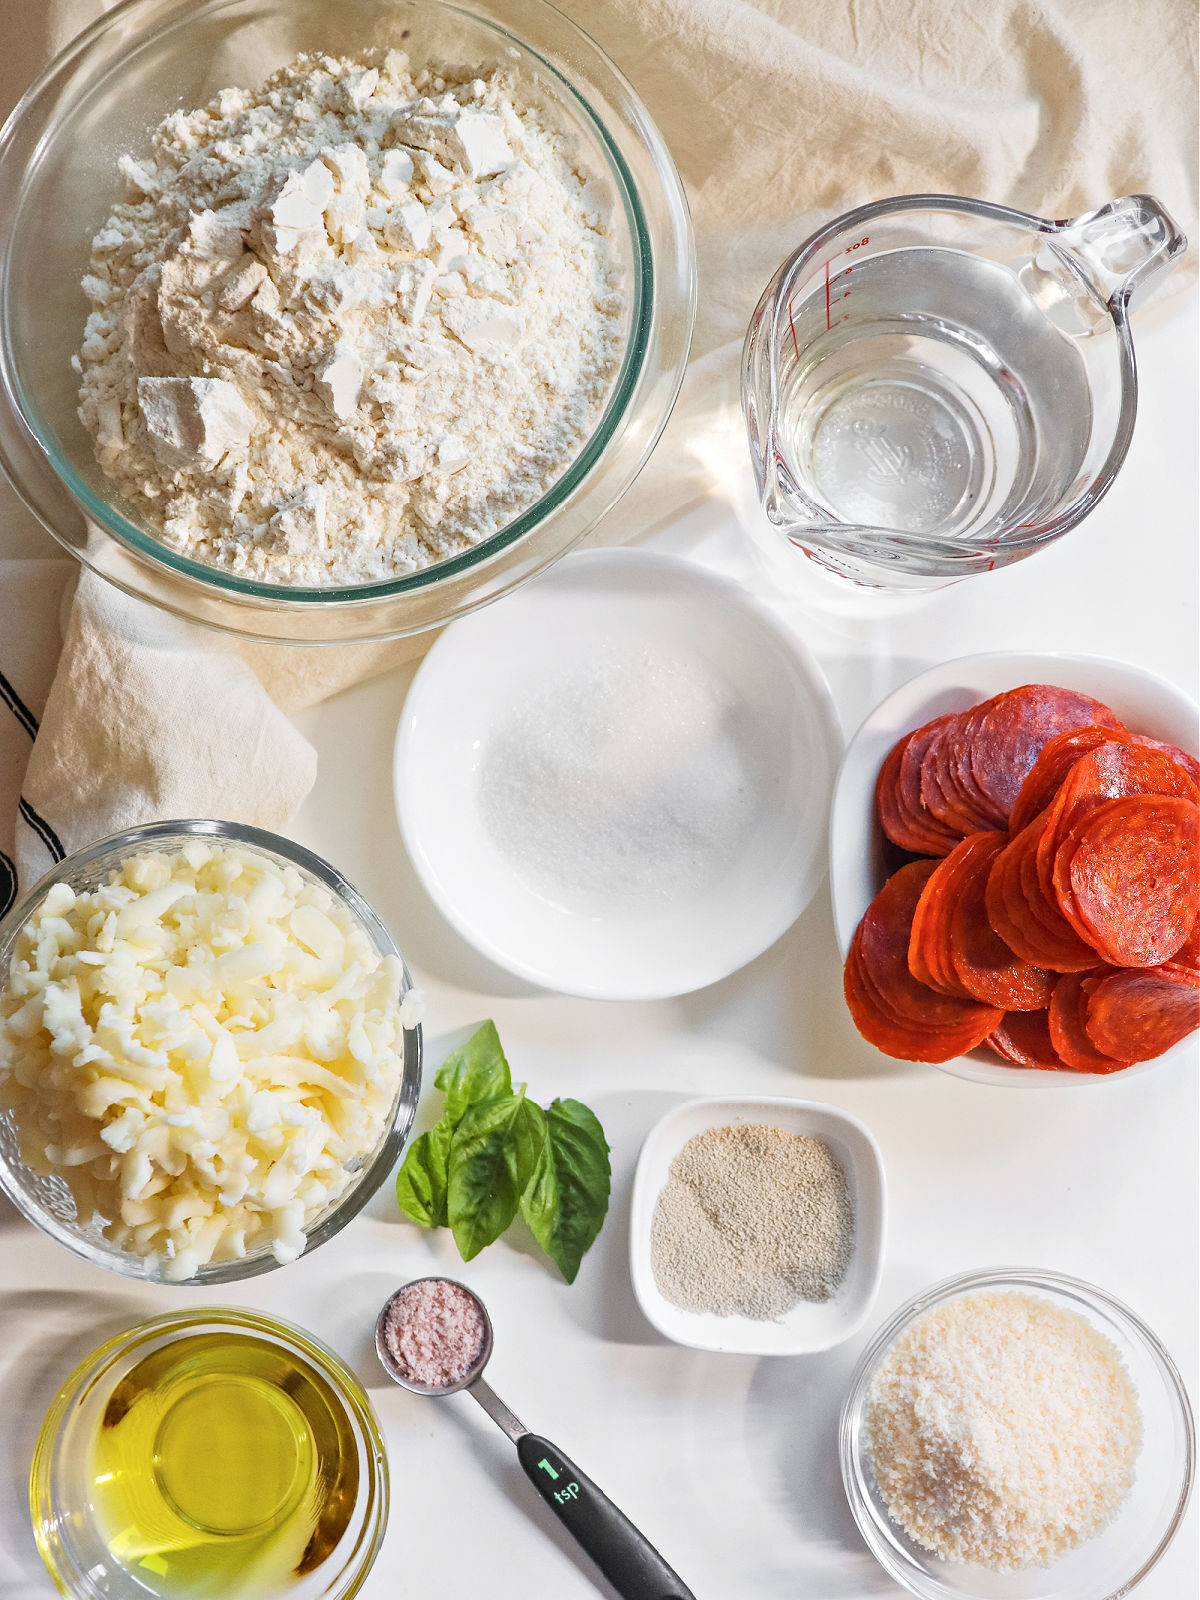 Flour, water, sugar, cheese, pepperoni, yeast and oil for making pizza bites.